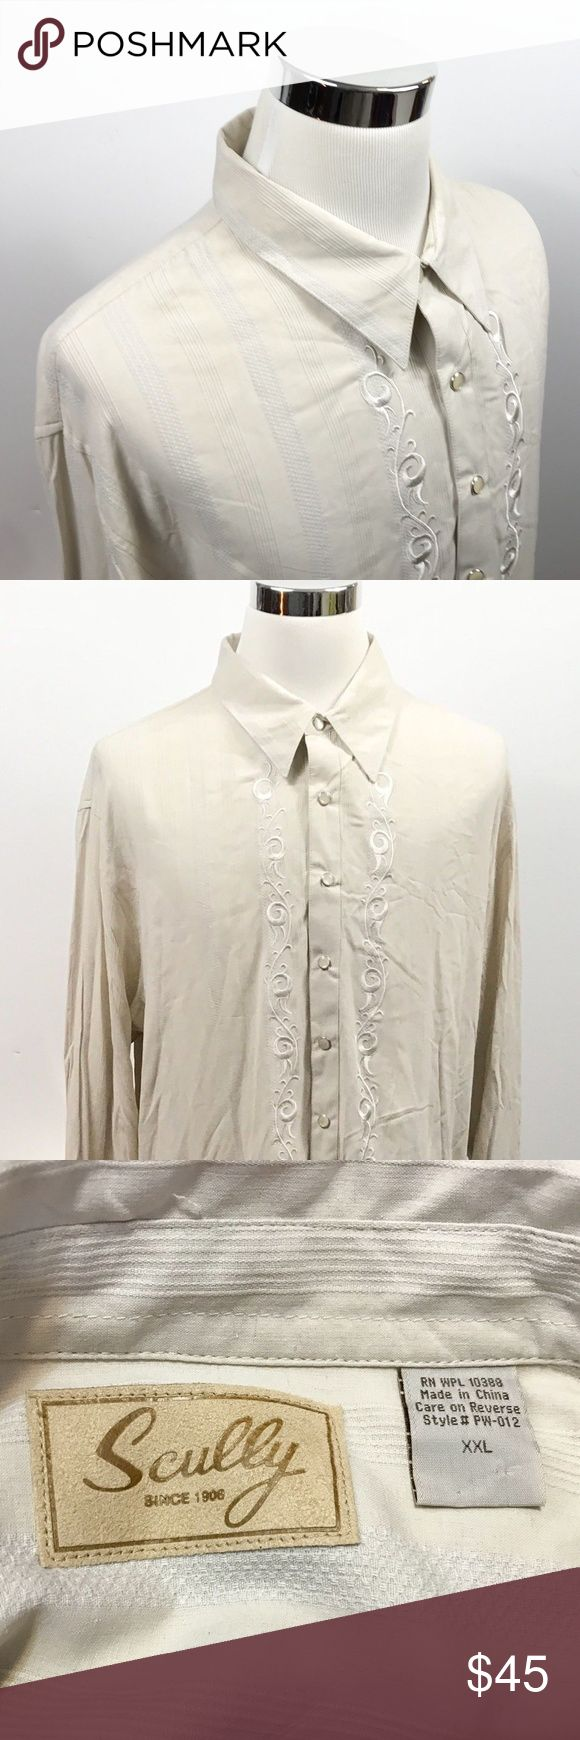 Scully Mens 2XL 100% Silk Pearl Snap Ivory Shirt Scully Mens 2XL 100% Silk Pearl Snap Ivory Woven Striped Western Cowboy Shirt   Measurements (inches): Pit to Pit (across the chest): 27 Sleeve (center collar to cuff): 37.5 Length (top of collar to hem): 35.5  Condition:  This item is in good pre-owned condition! Free from rips & stains.  All items come from a smoke/ pet free environment. Scully Shirts Casual Button Down Shirts